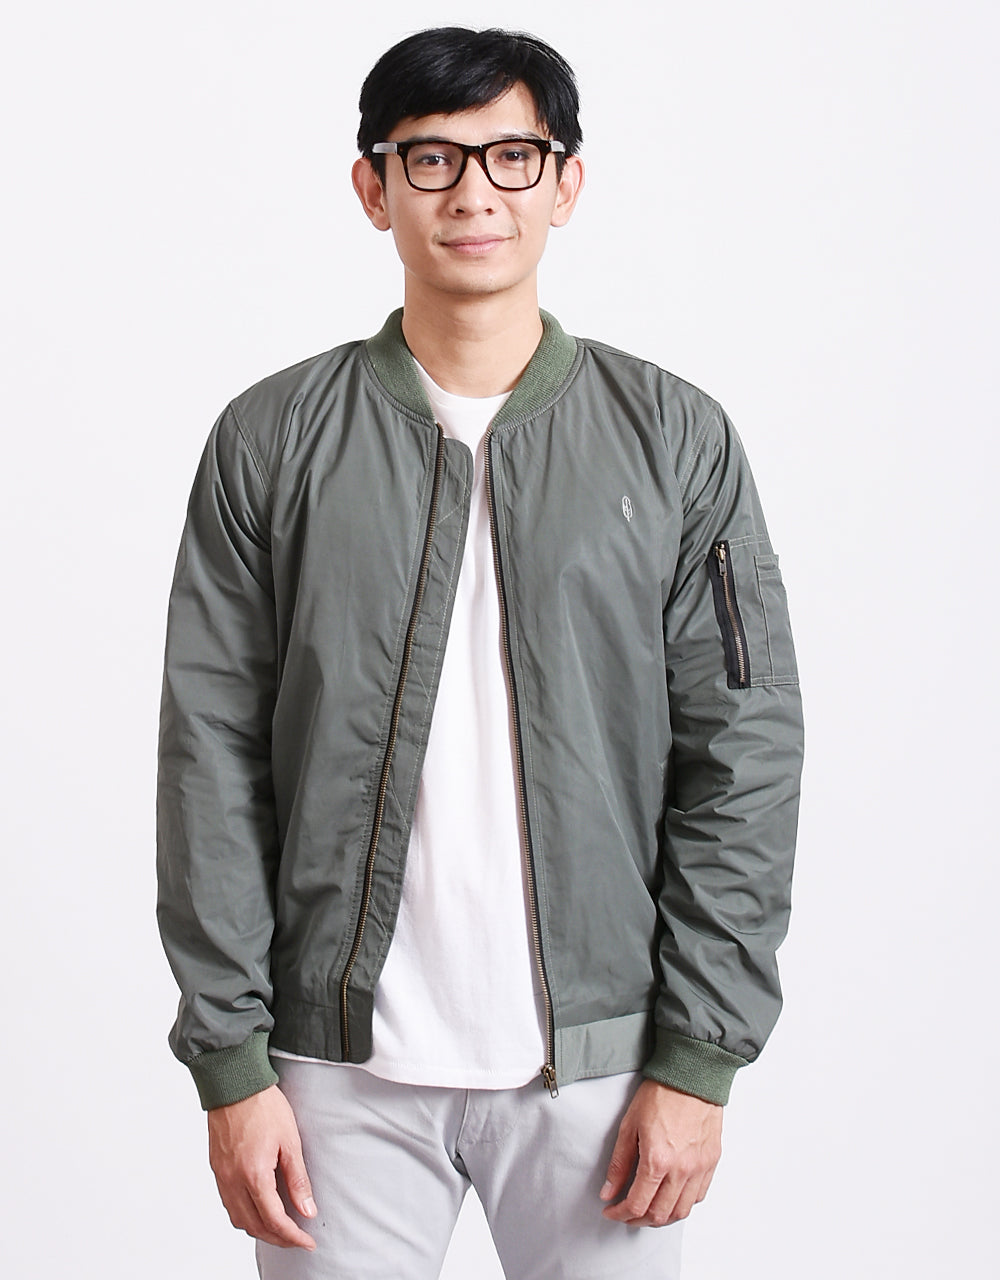 Easiest 3 Bomber Jacket